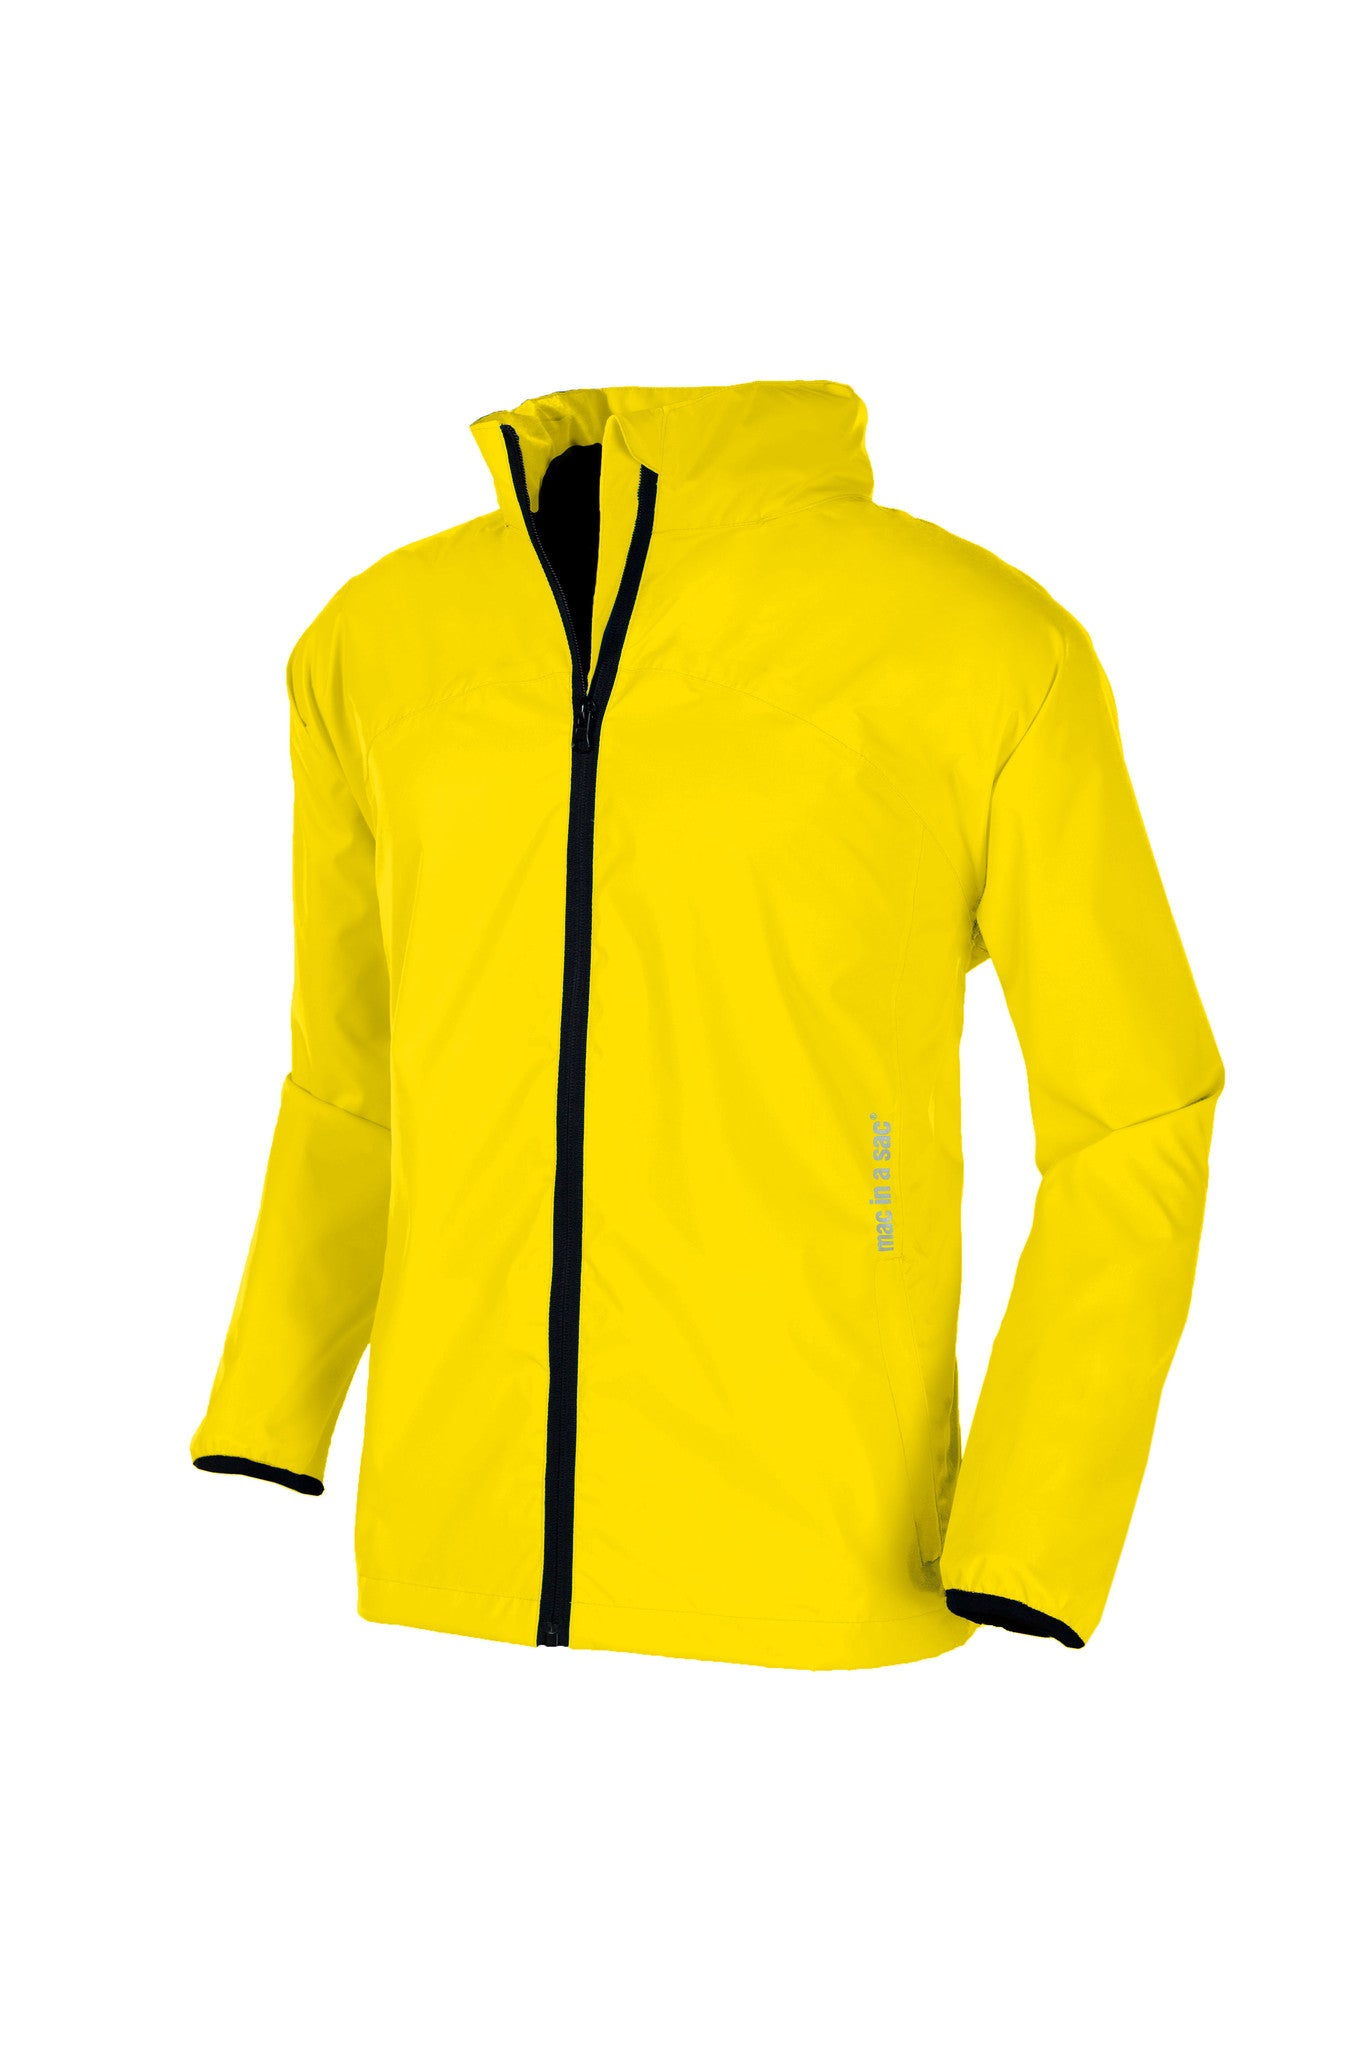 Mac in a Sac 2 Waterproof Jacket, Packaway, Canary Yellow